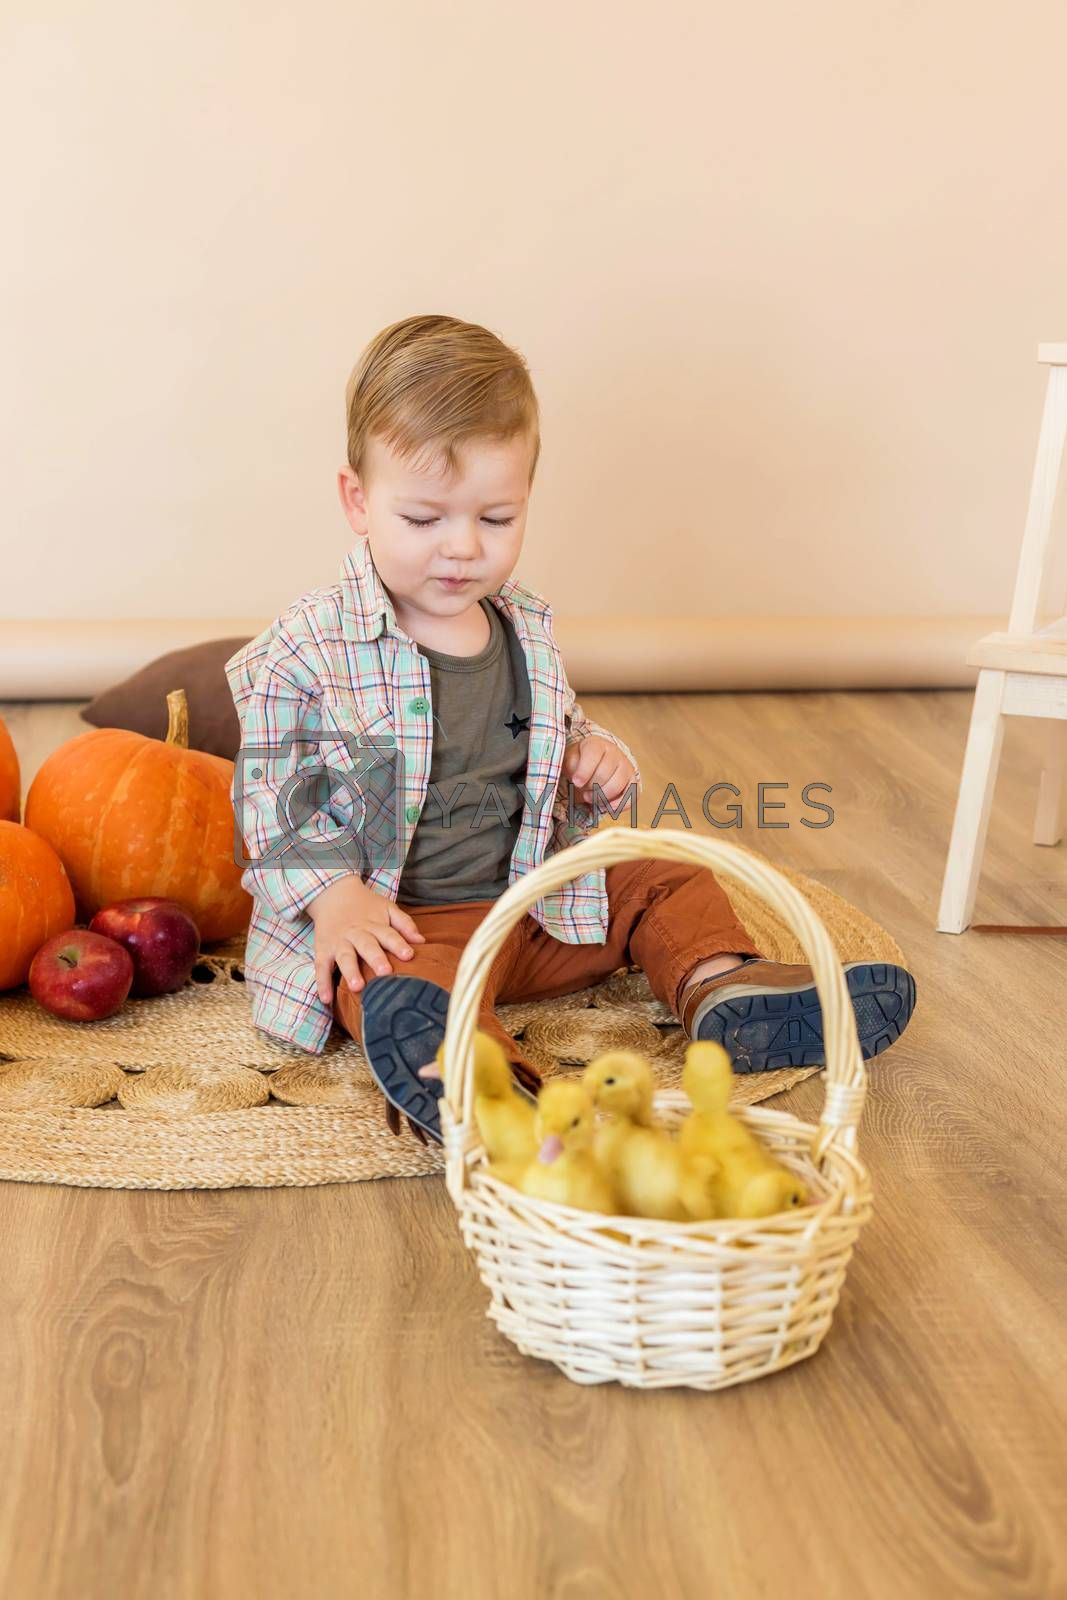 A little boy sits among pumpkins with a basket of ducklings.